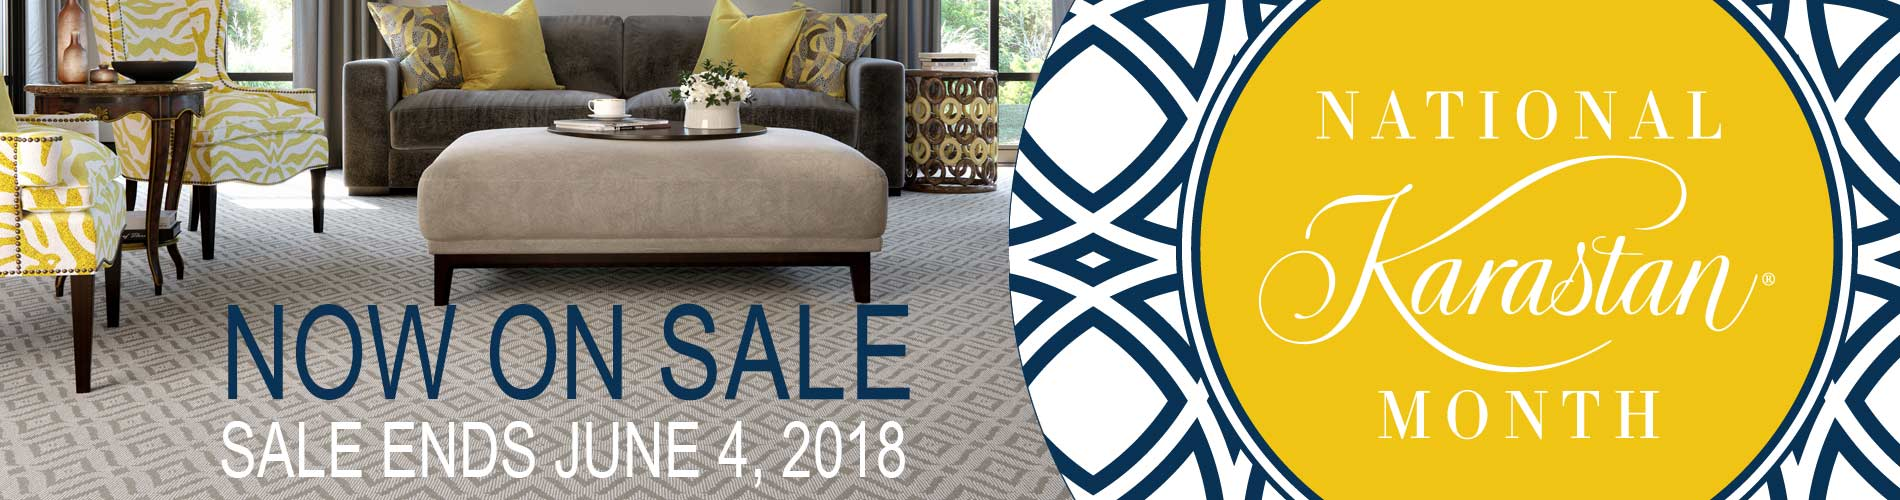 Flooring On Sale | Carpet, Tile, Hardwood, Luxury Vinyl Tile & More ...